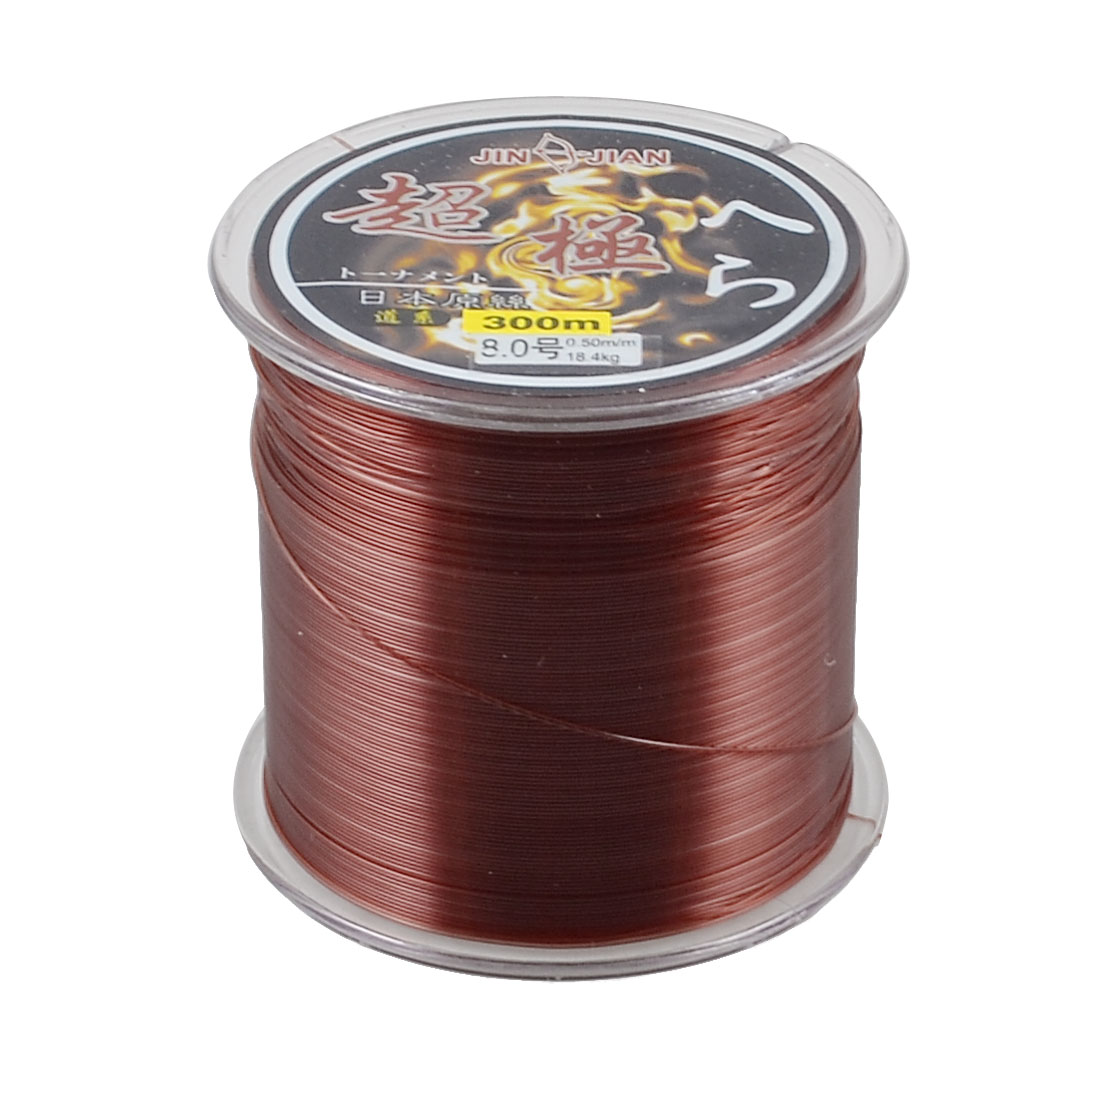 0.50mm Dia 18.4Kg Burgundy Nylon Freshwater Fishing Line Thread Reel 300M 8.0#